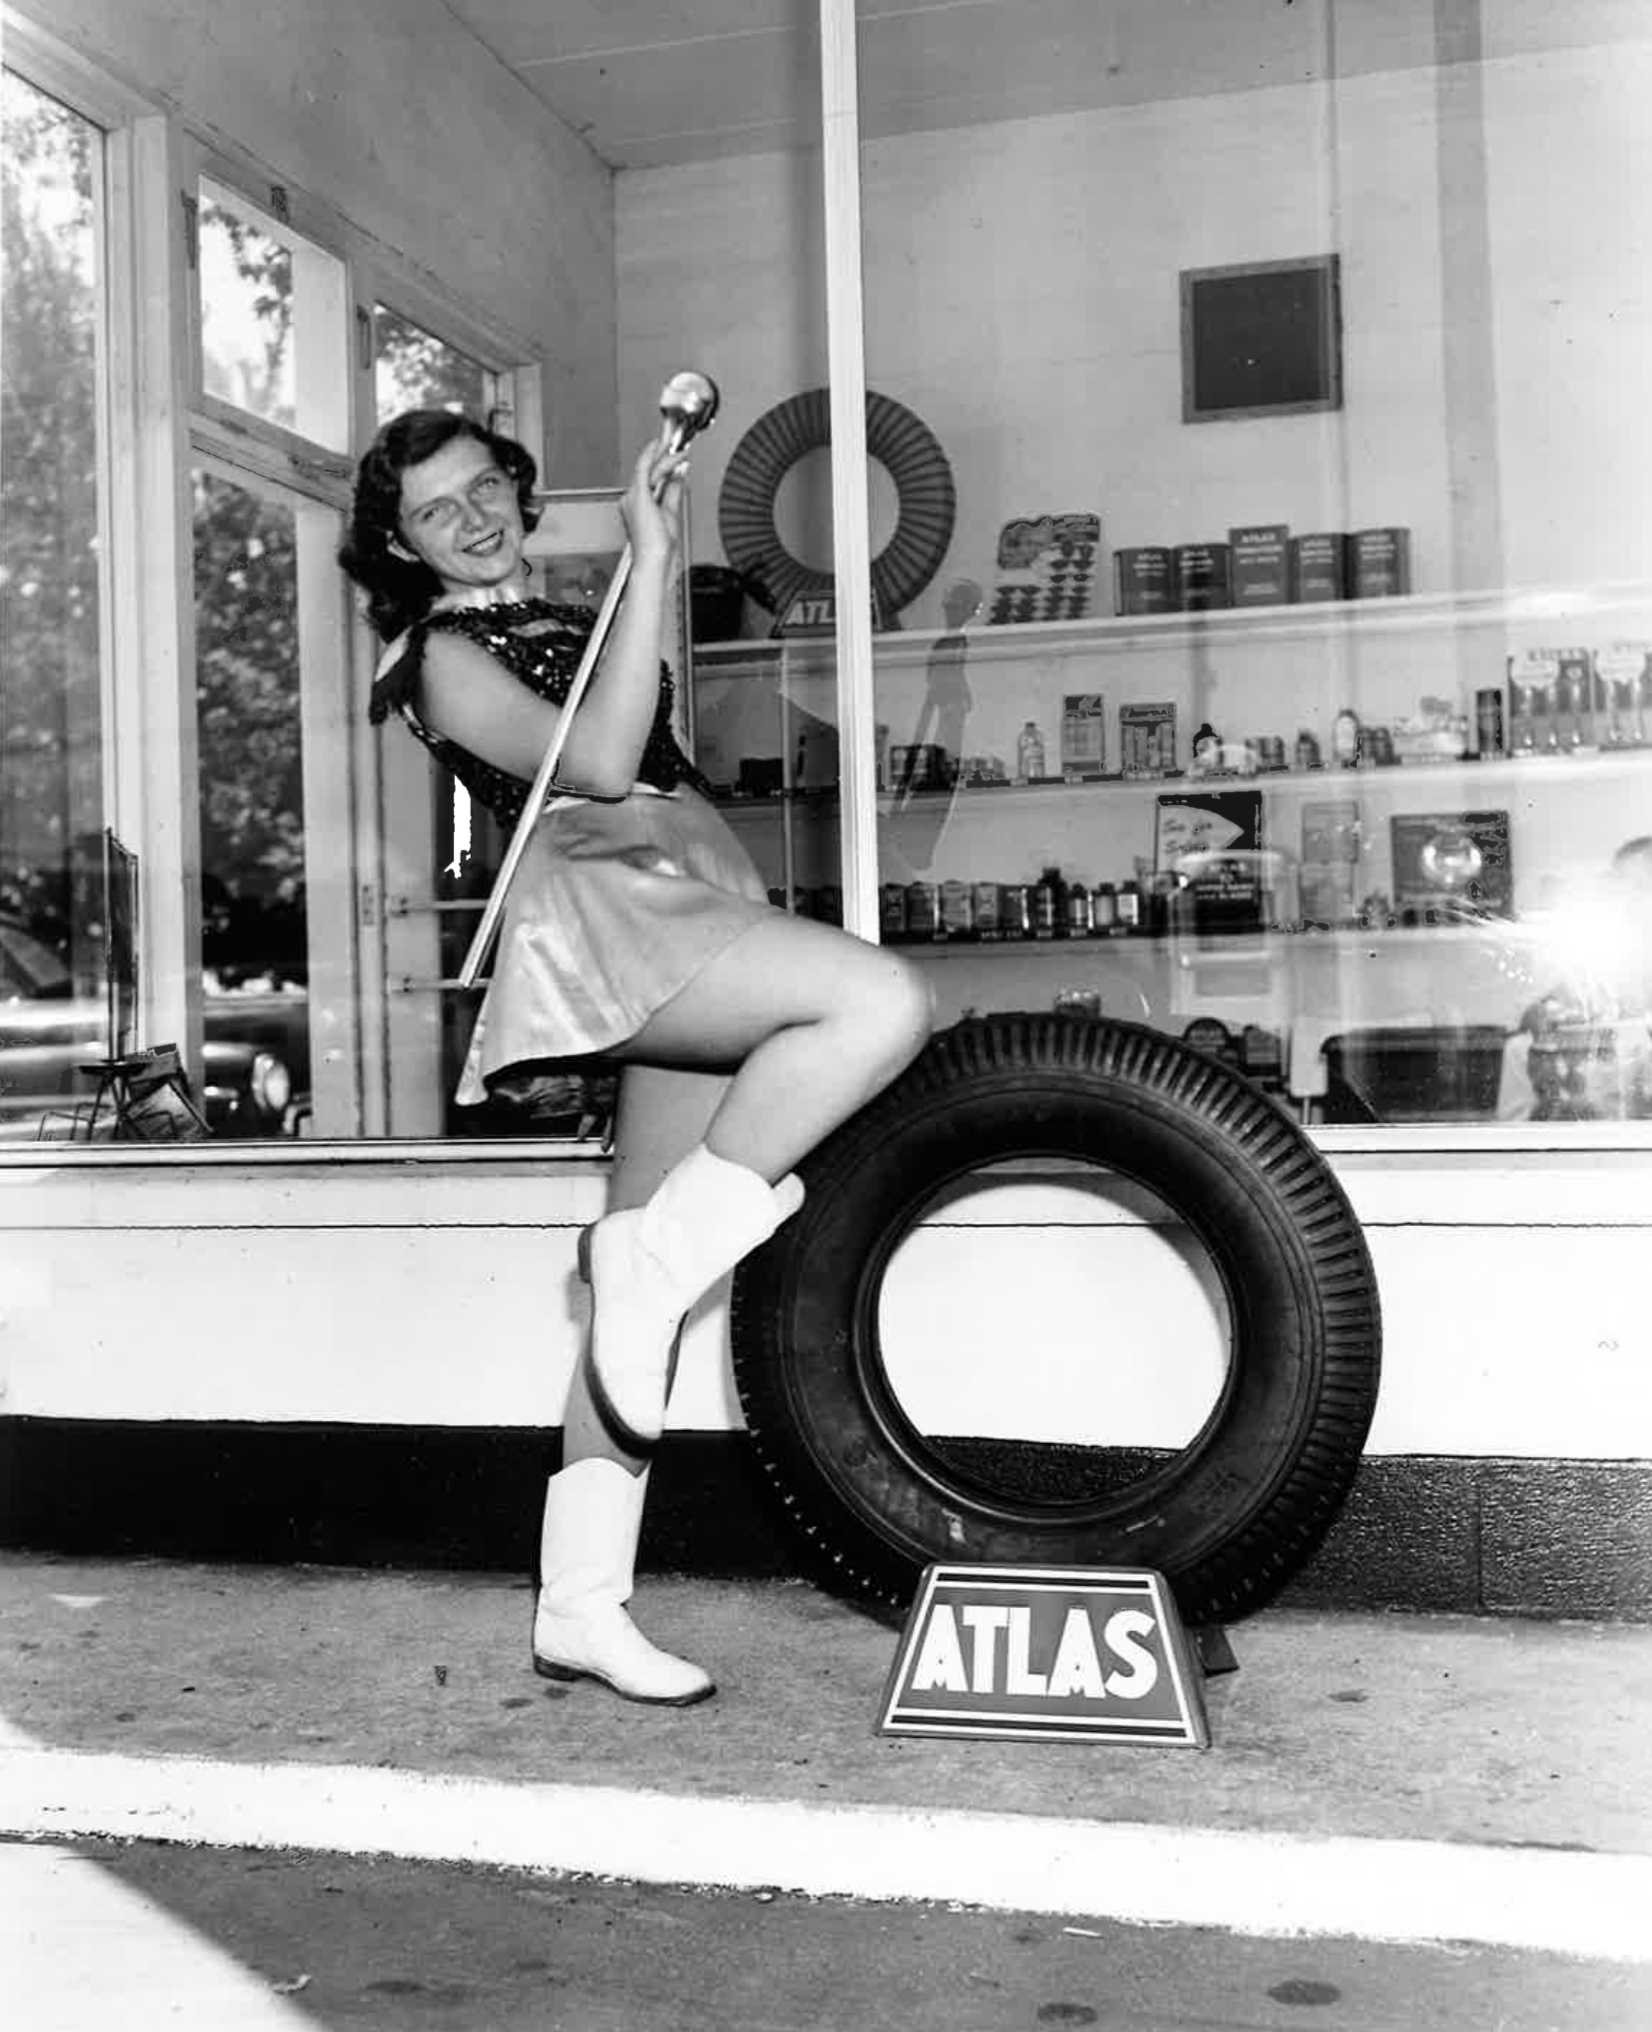 Atlas Tire Promo